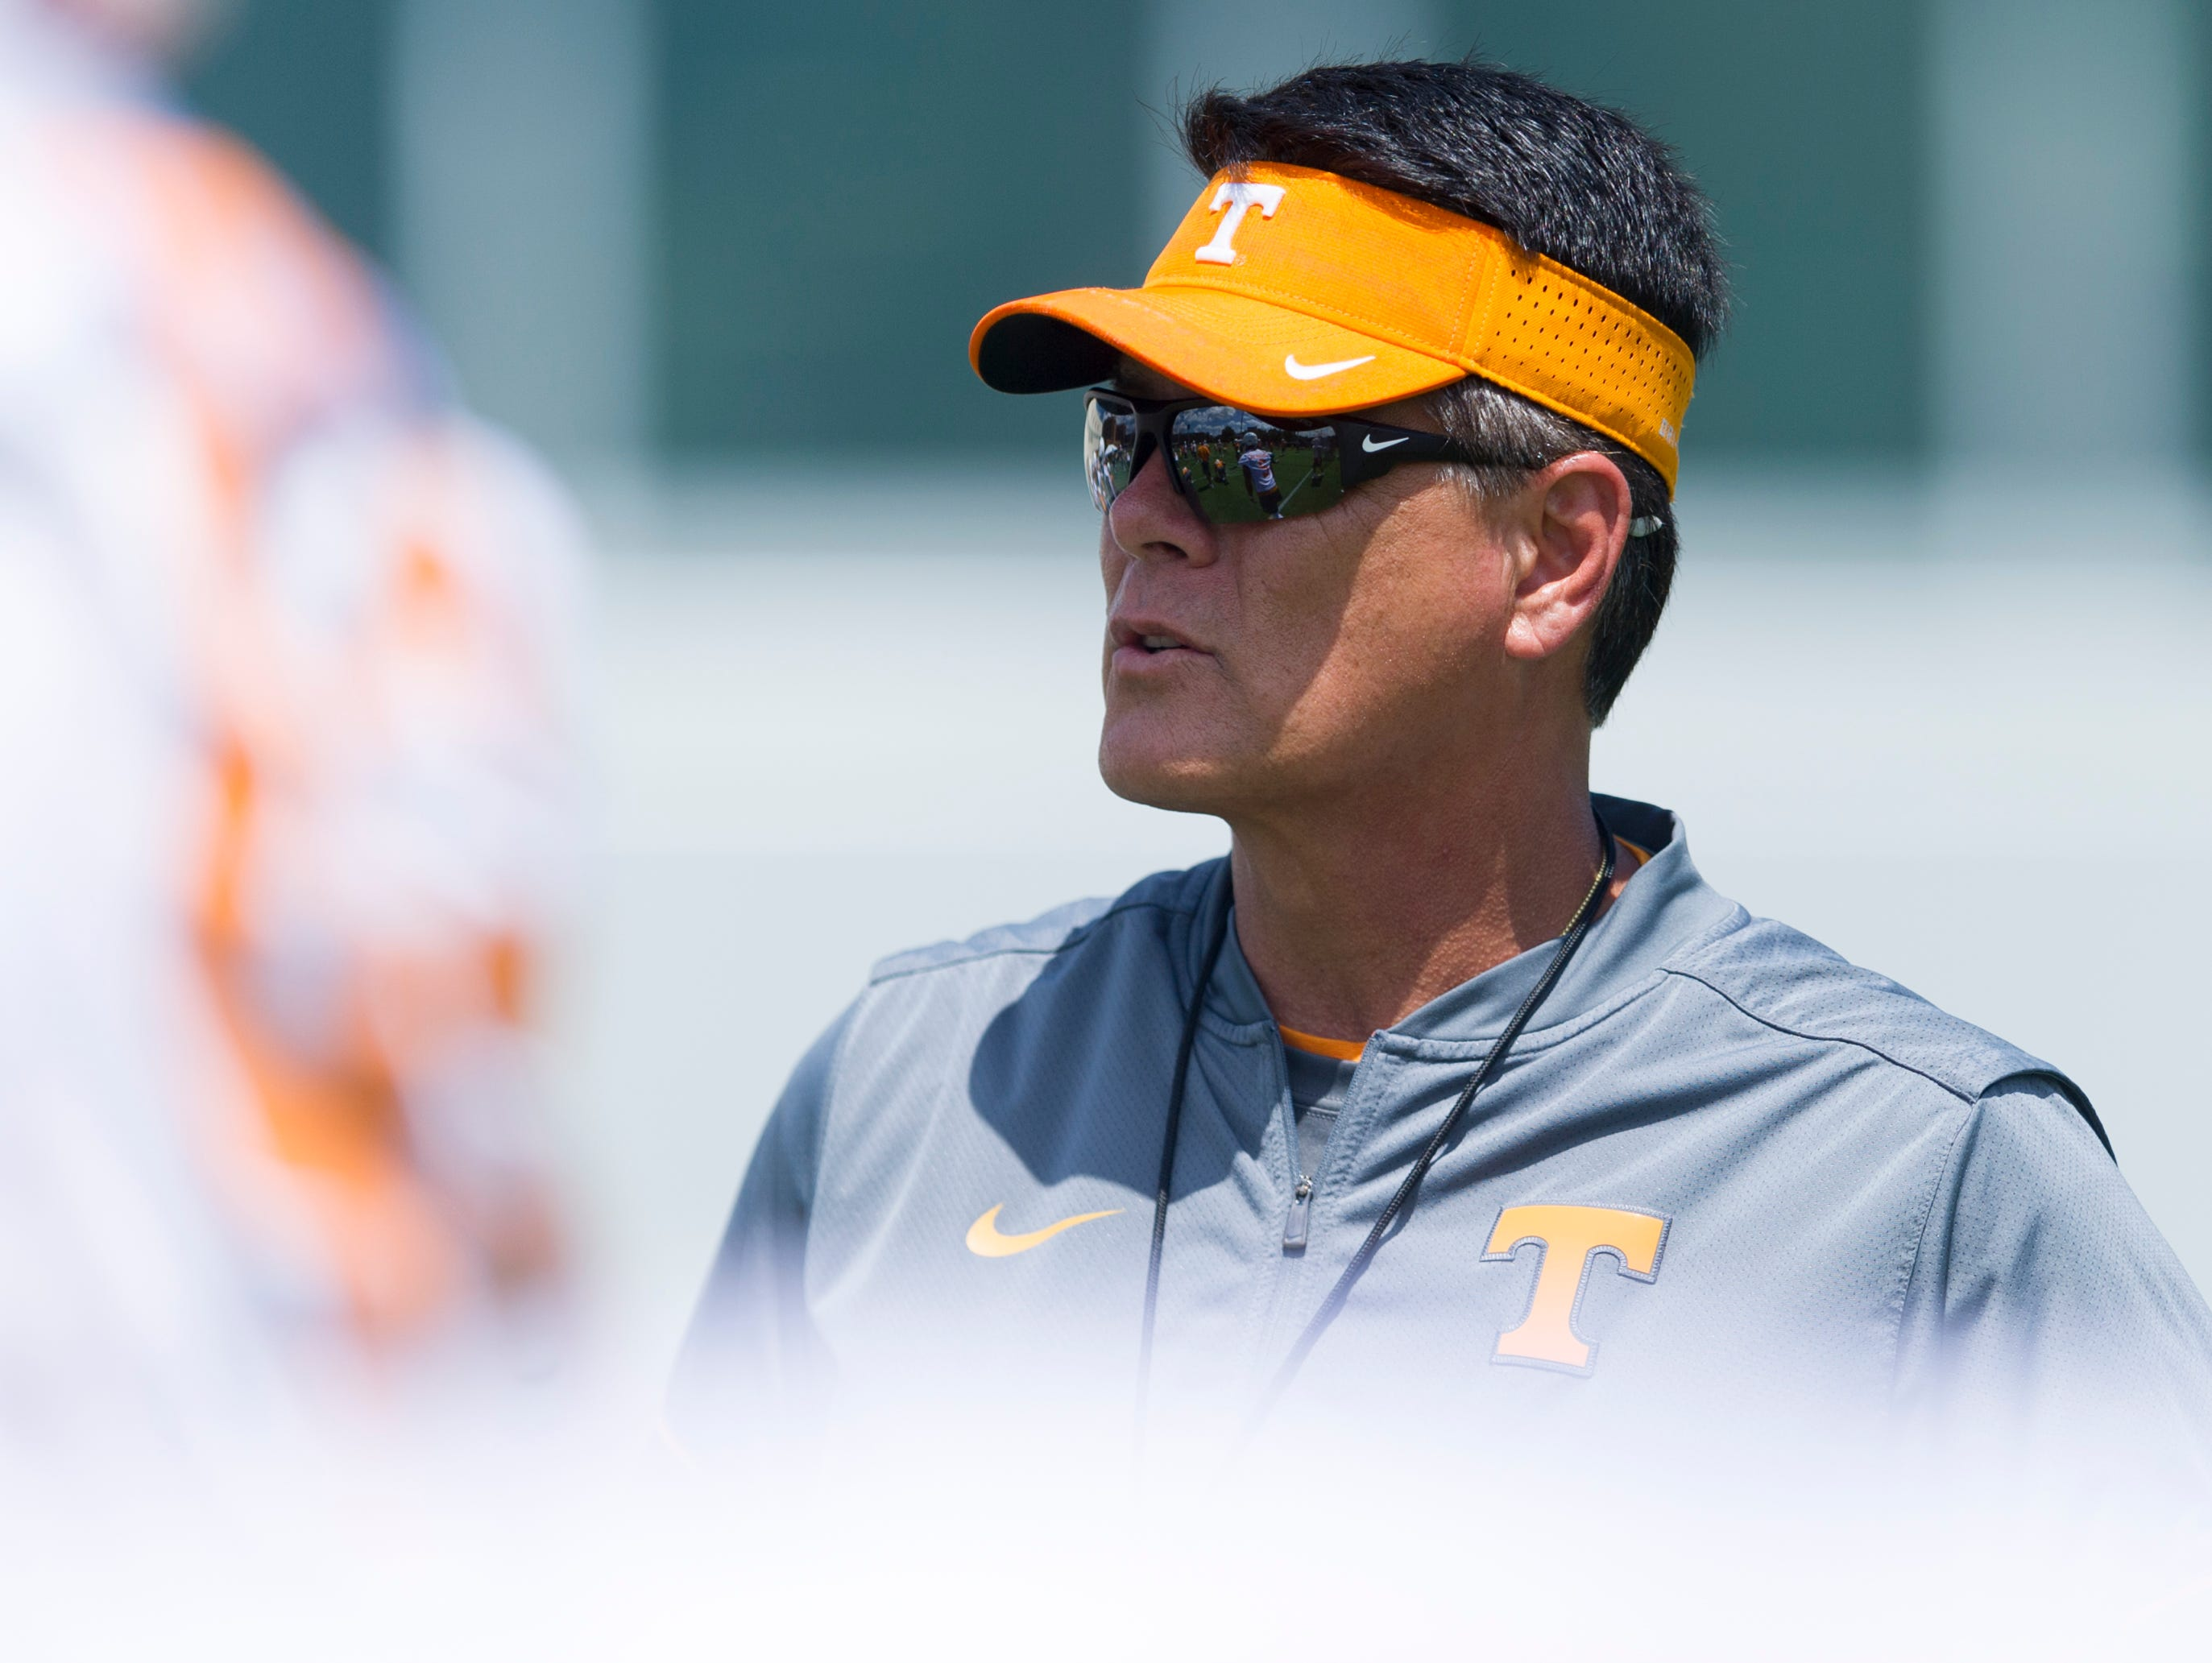 Tennessee Quarterbacks Coach Mike Canales during Tennessee Volunteers fall practice at Anderson Training Facility in Knoxville, Tennessee on Saturday, July 29, 2017.